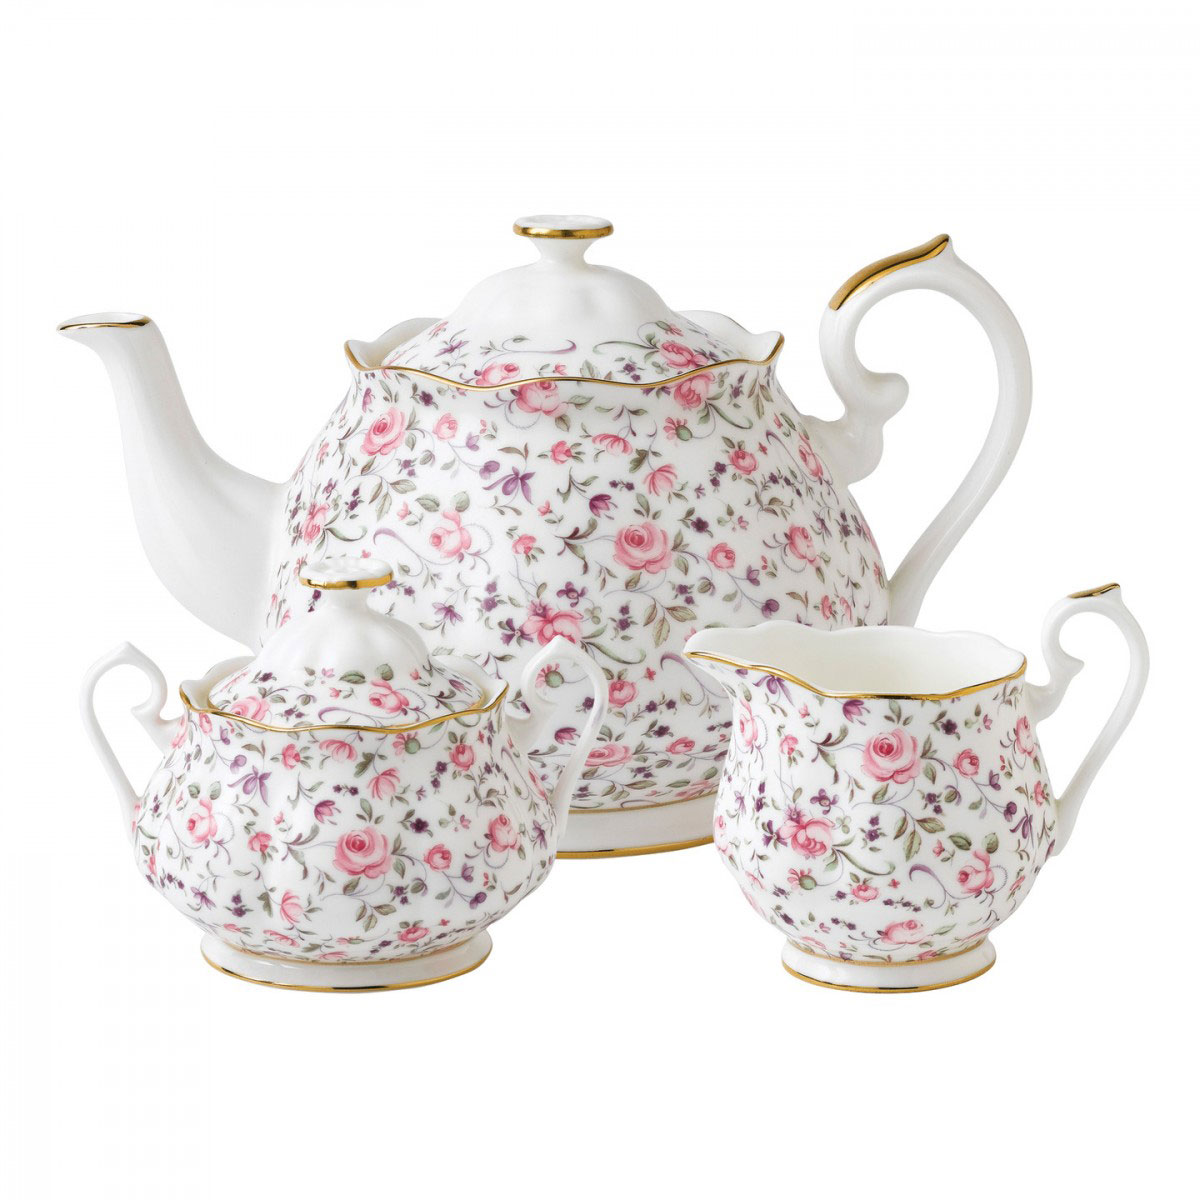 Royal Albert China Rose Confetti 3 pc Teaset - Teapot, Sugar, Creamer